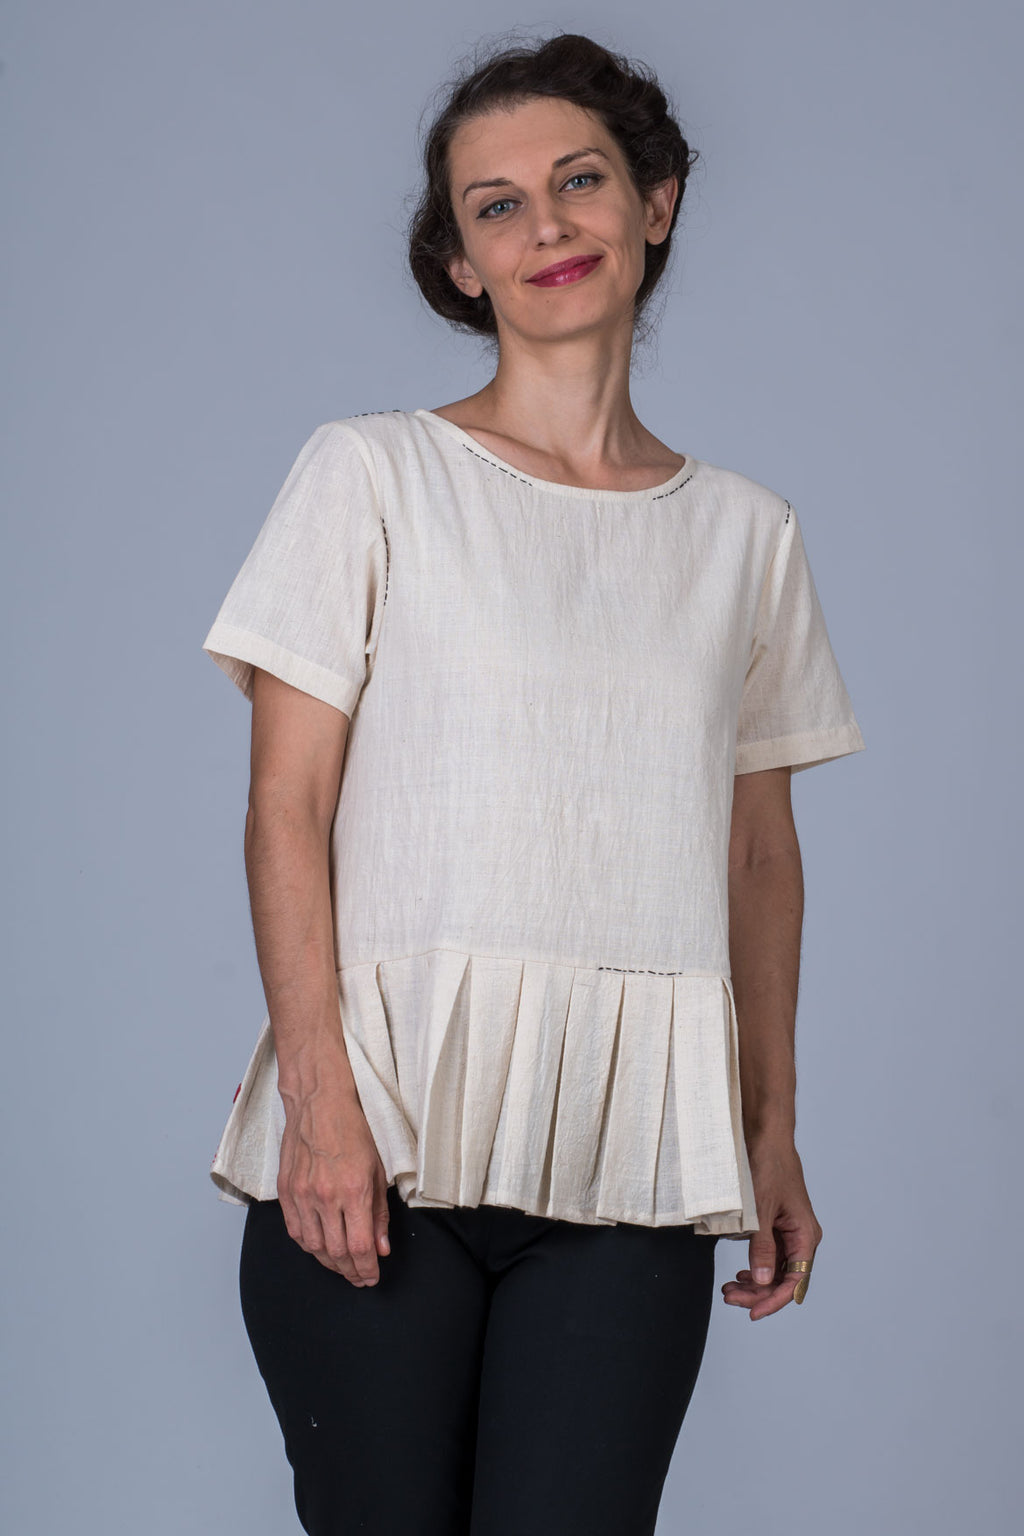 Off White Desi Cotton Khadi Top - WHY - Upasana Design Studio